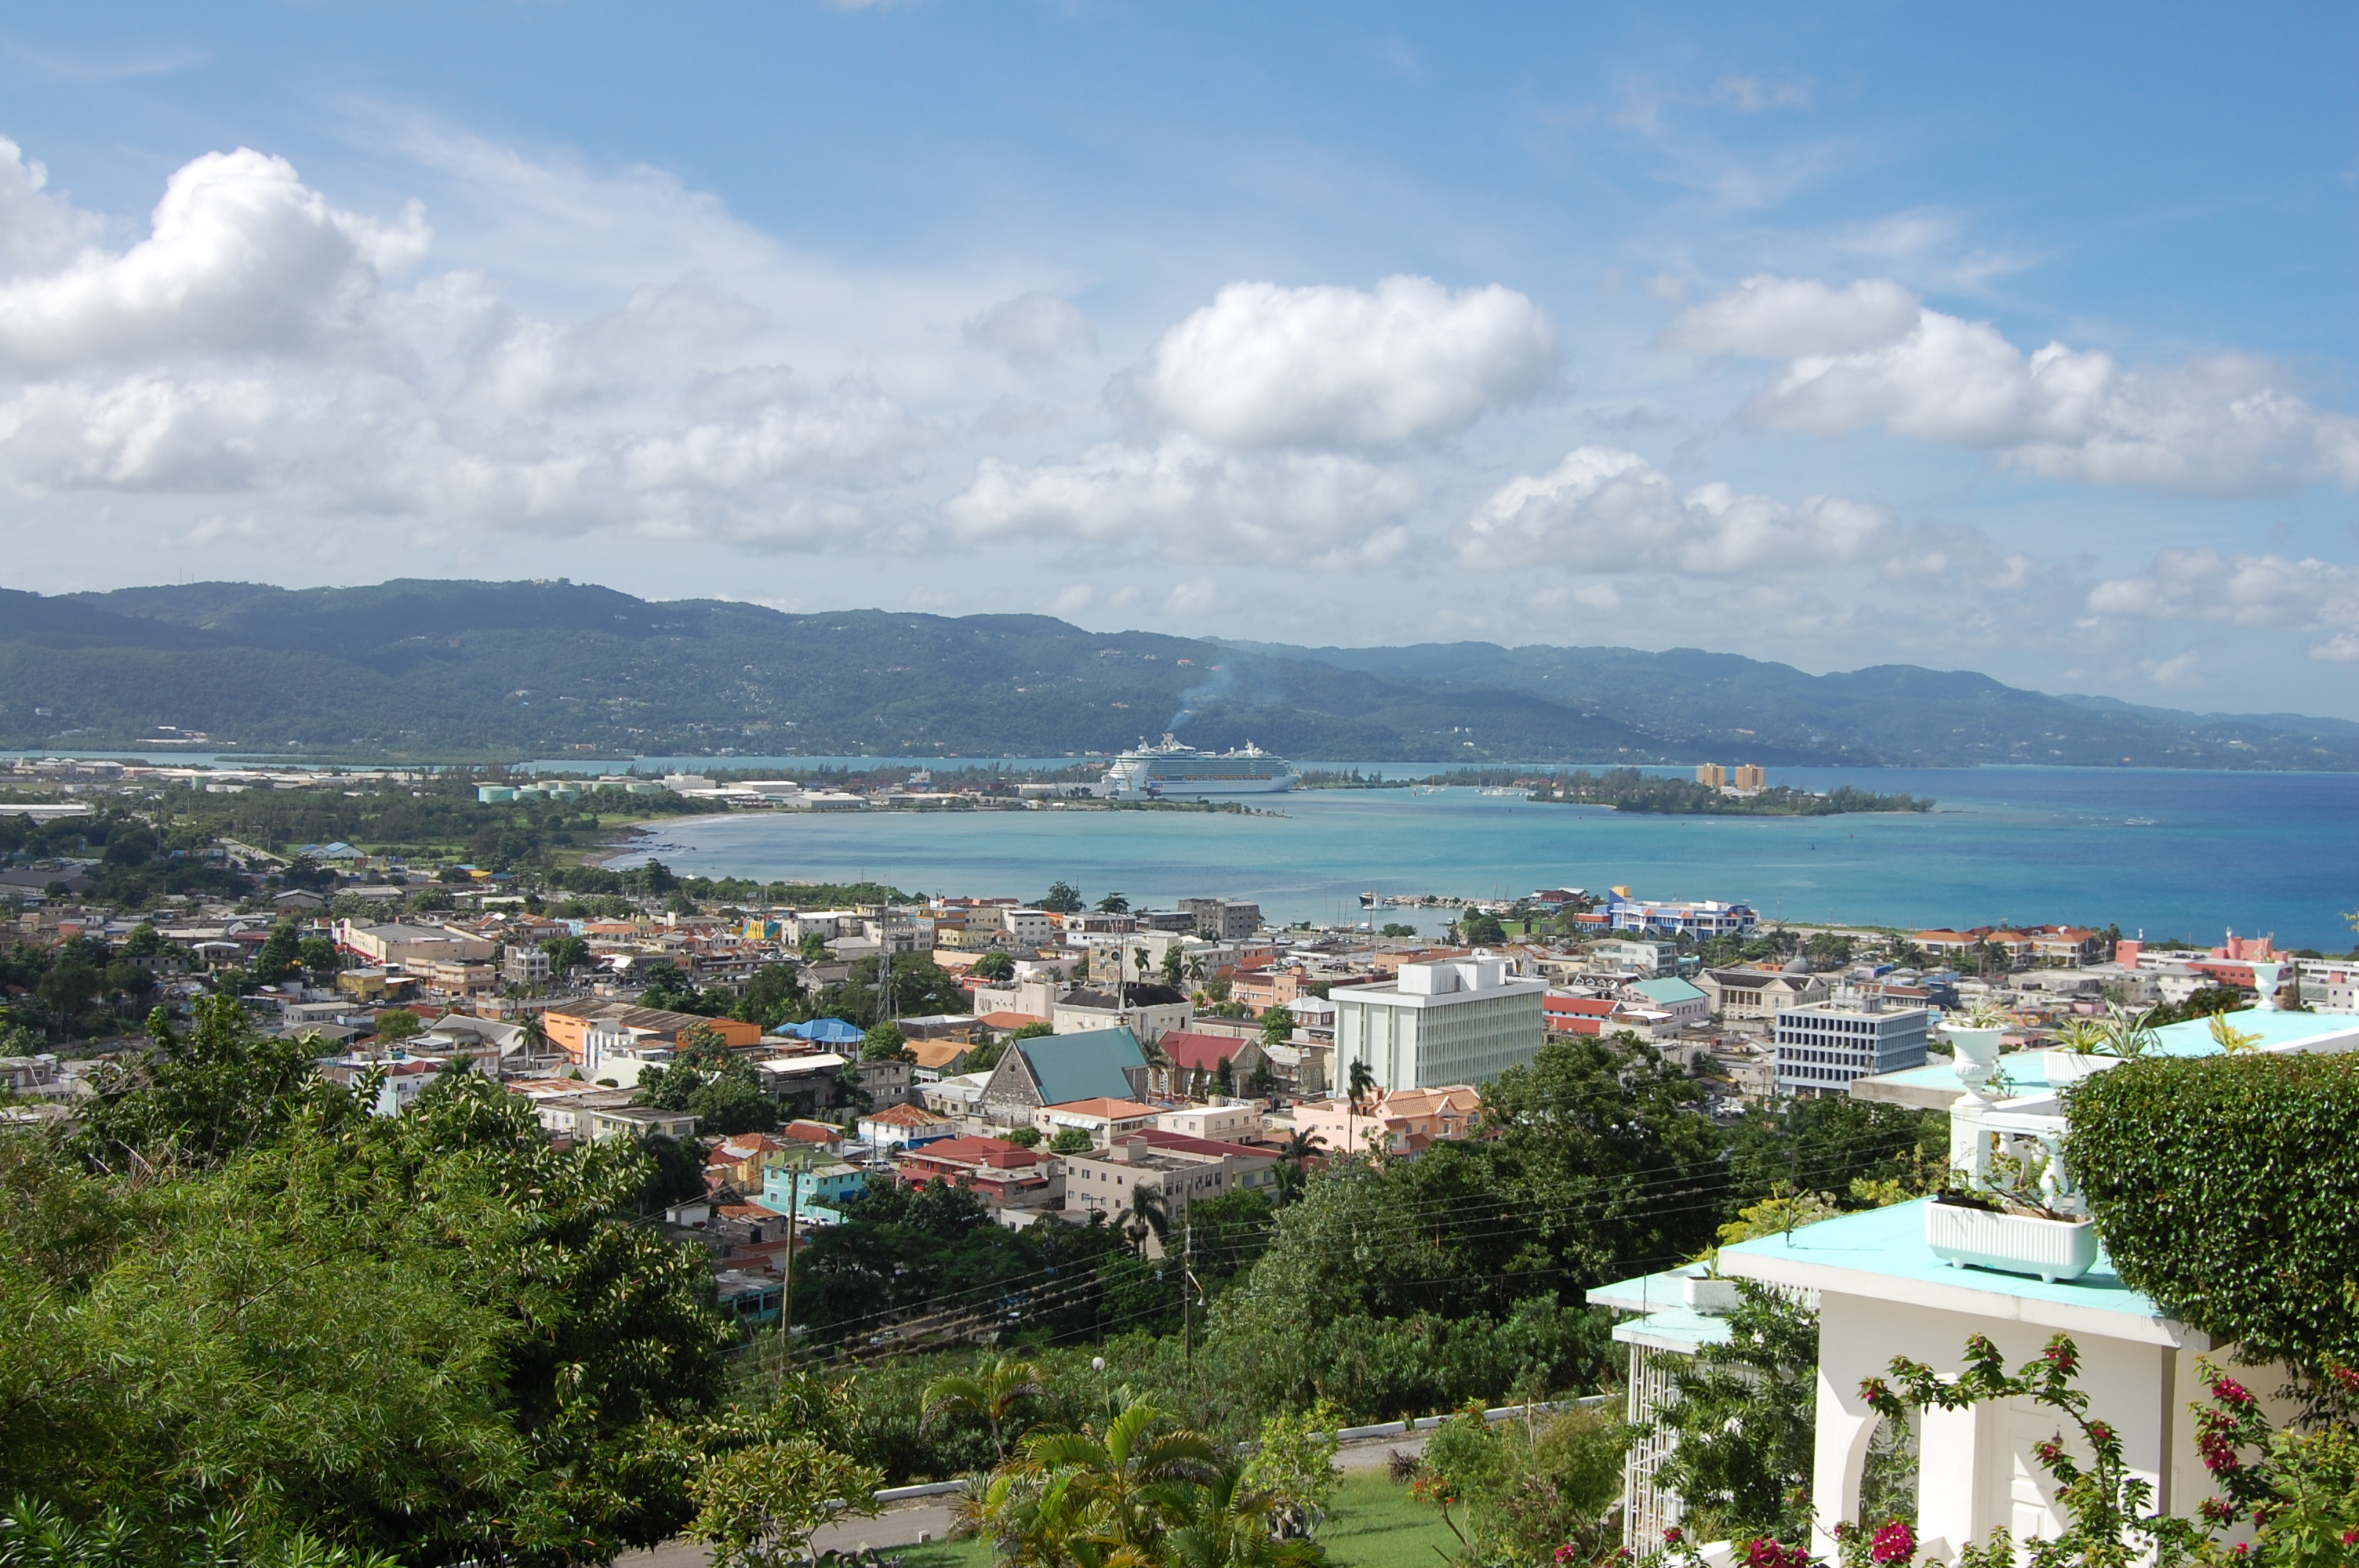 View of Montego Bay, Jamaica